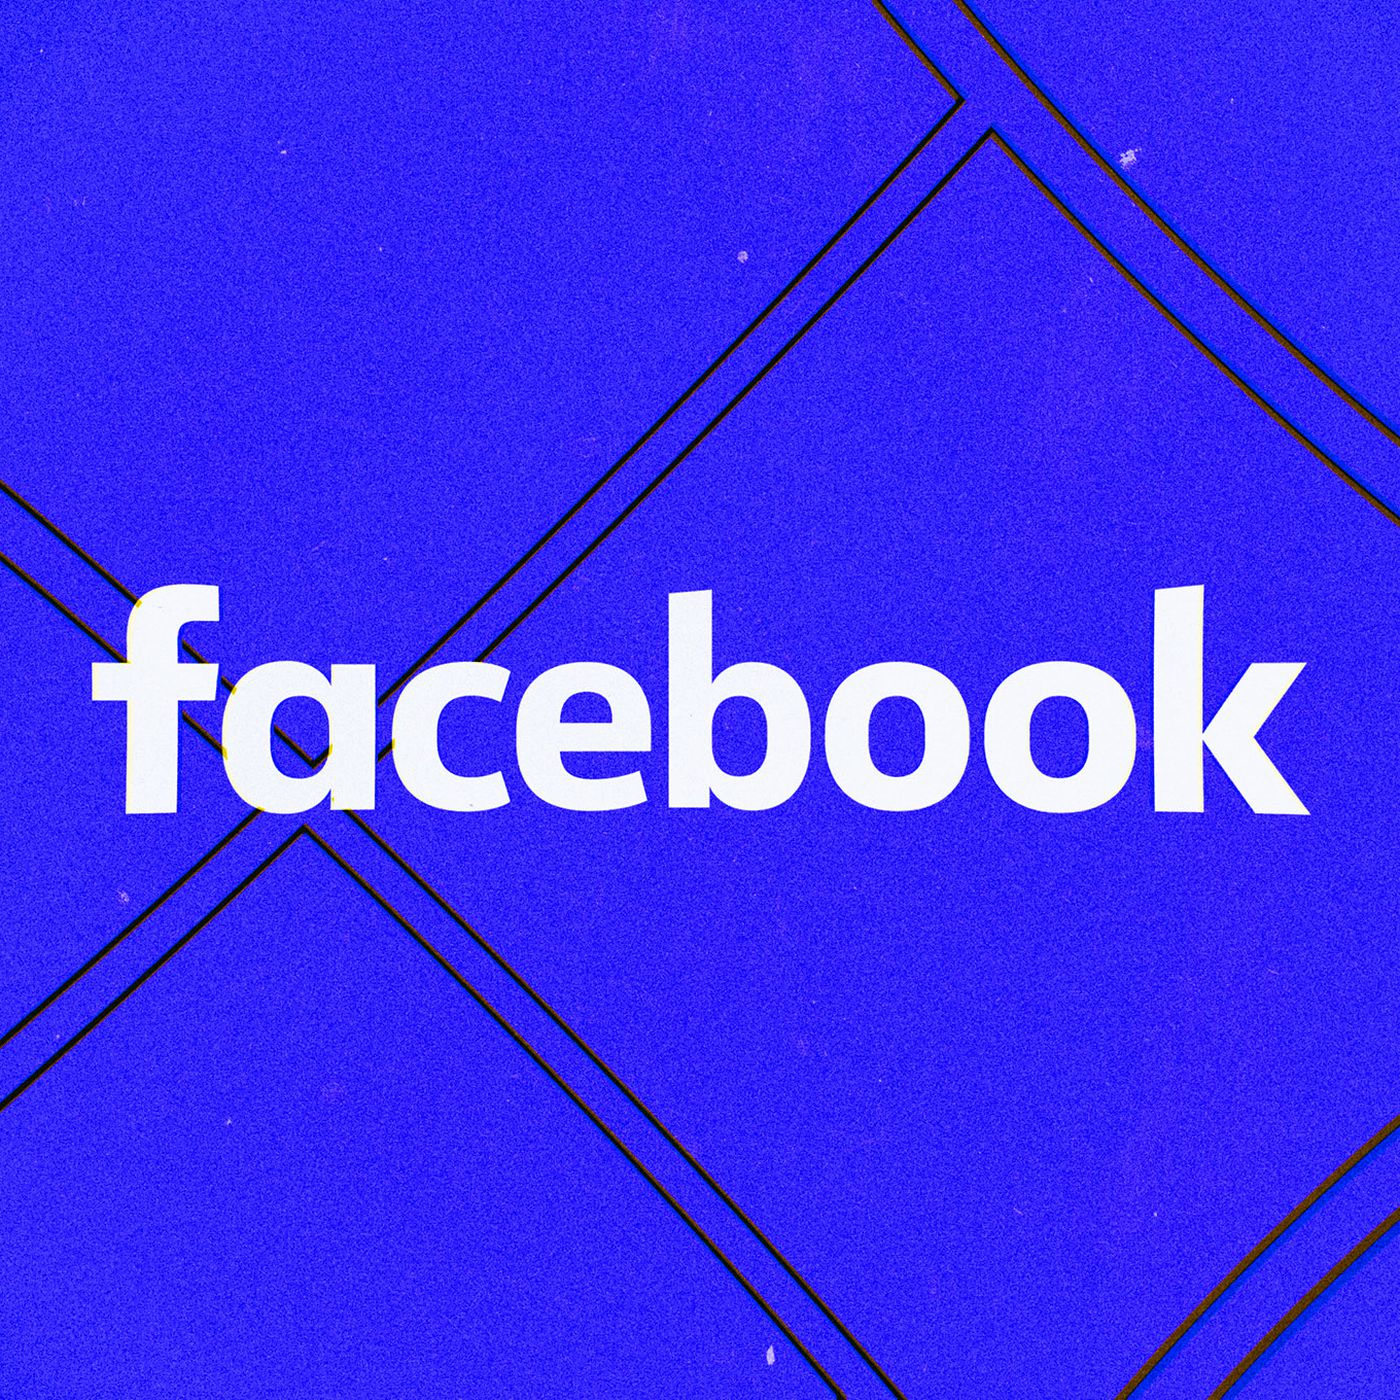 Facebook Is Developing An Internet Satellite After Shutting Down Drone Project The Verge